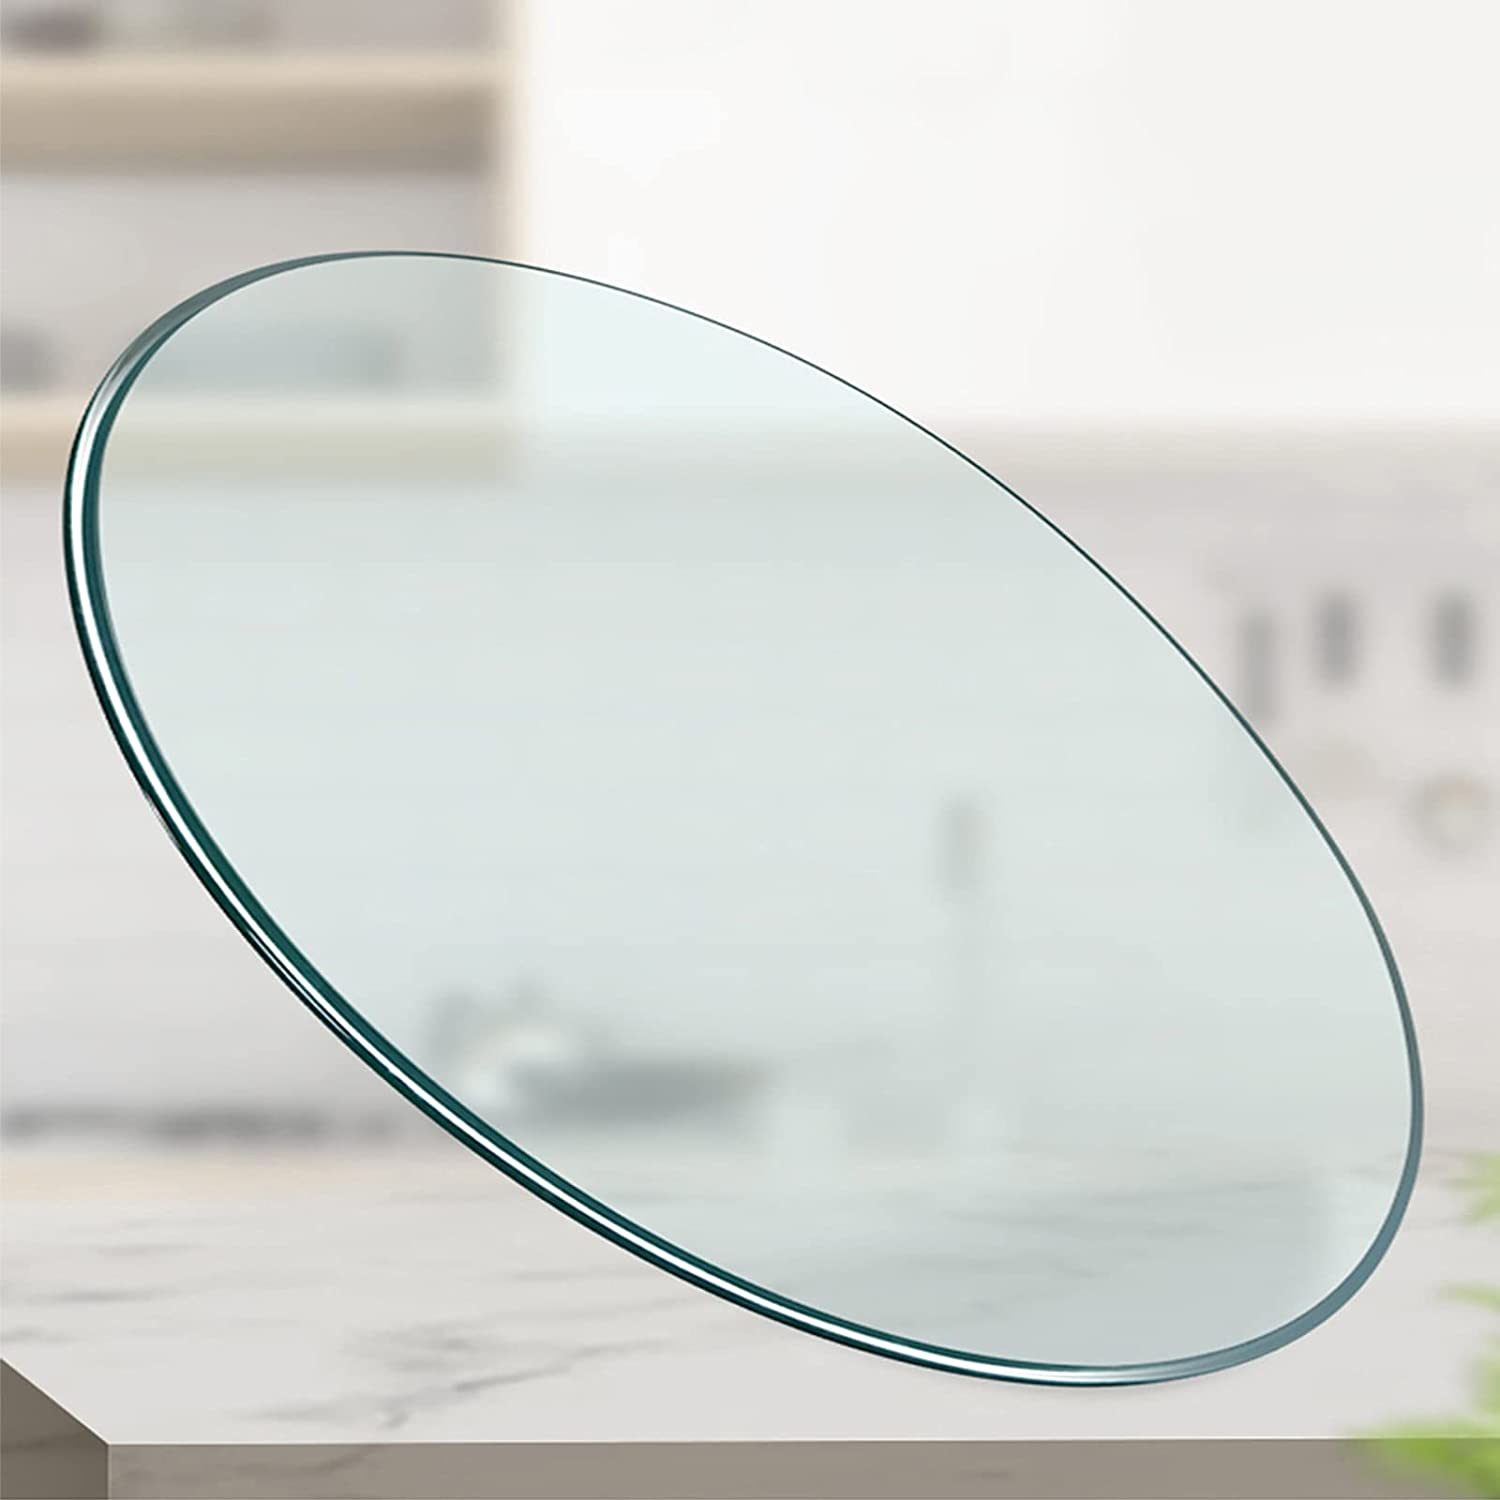 L-KCBTY Round overseas Glass Table Top Customizable 5 ☆ popular Size 1 in Ø 10in~50